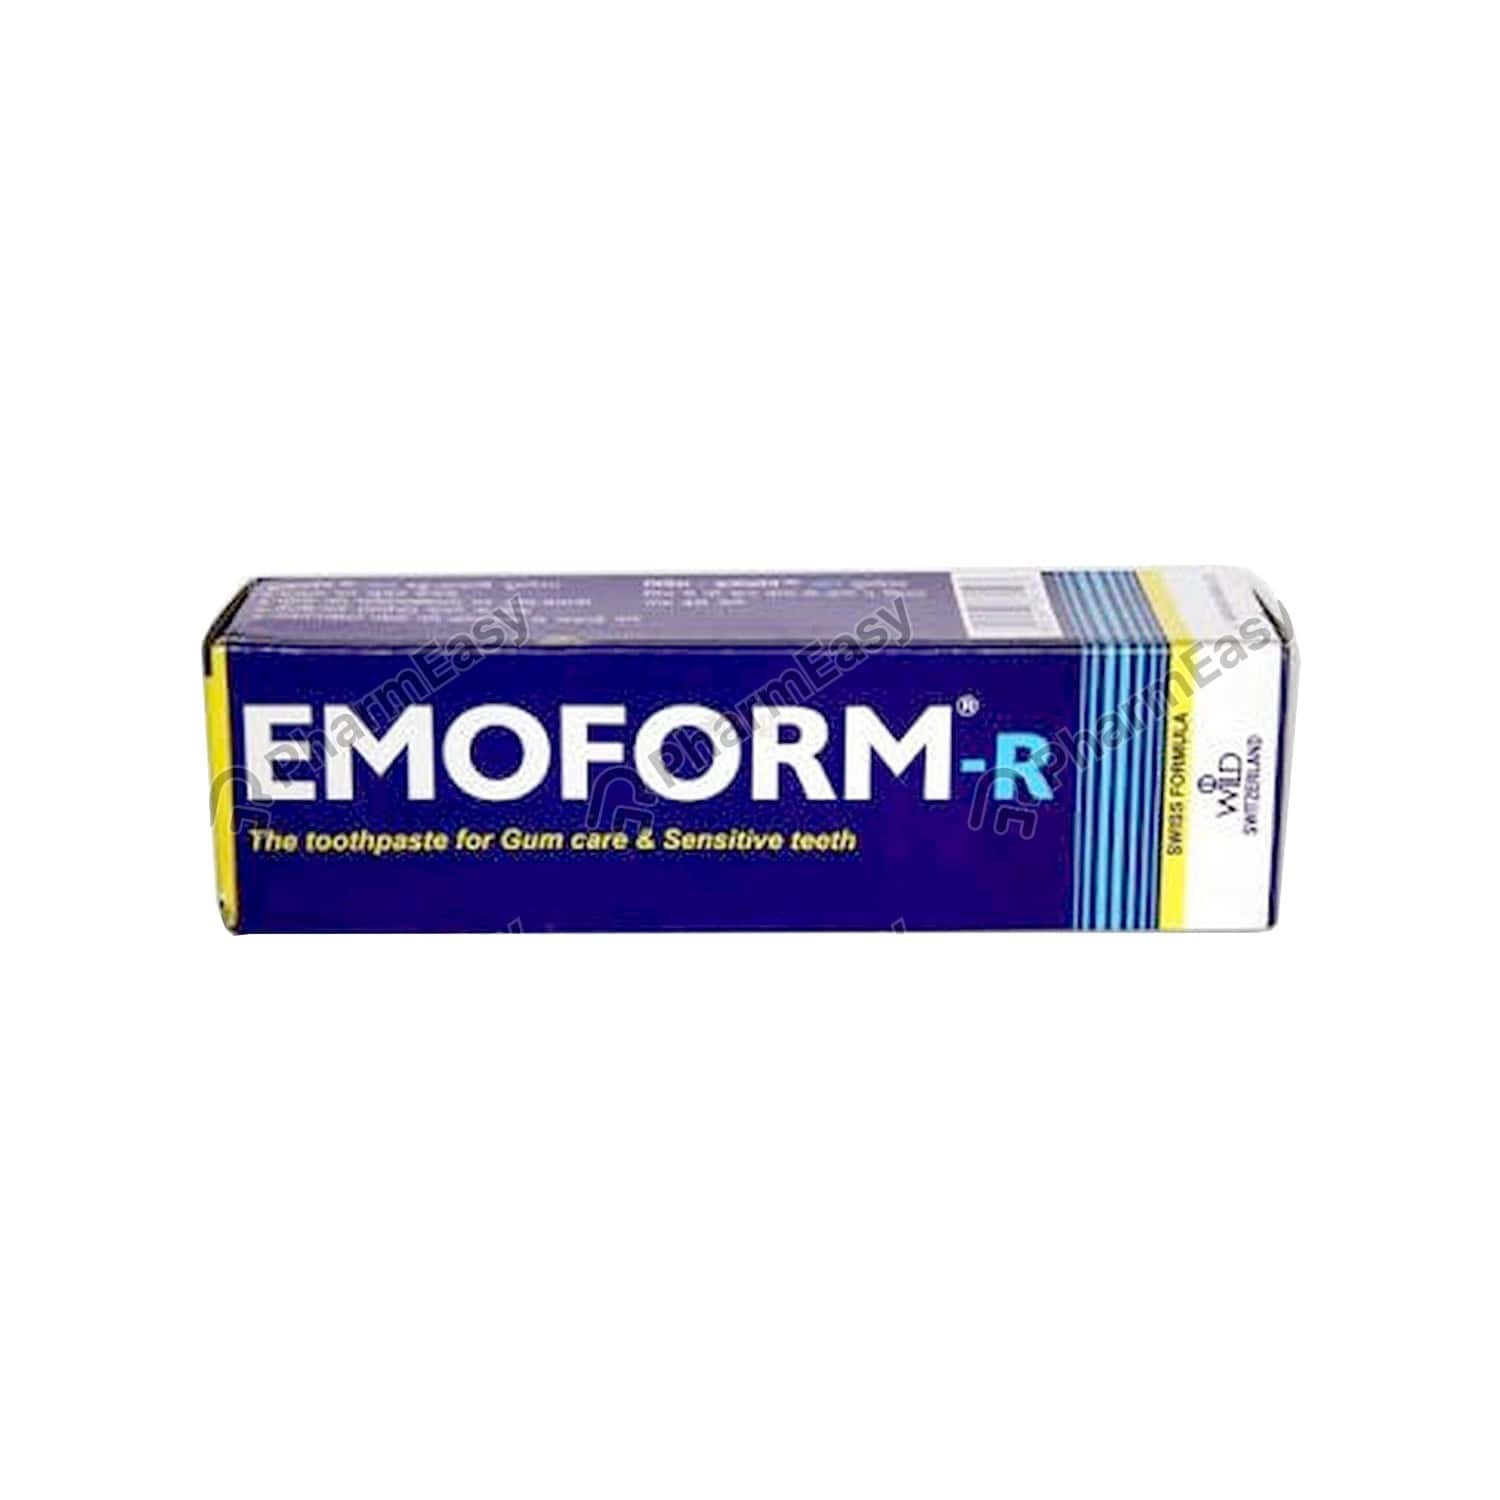 Emoform R Tube Of 150gm Toothpaste